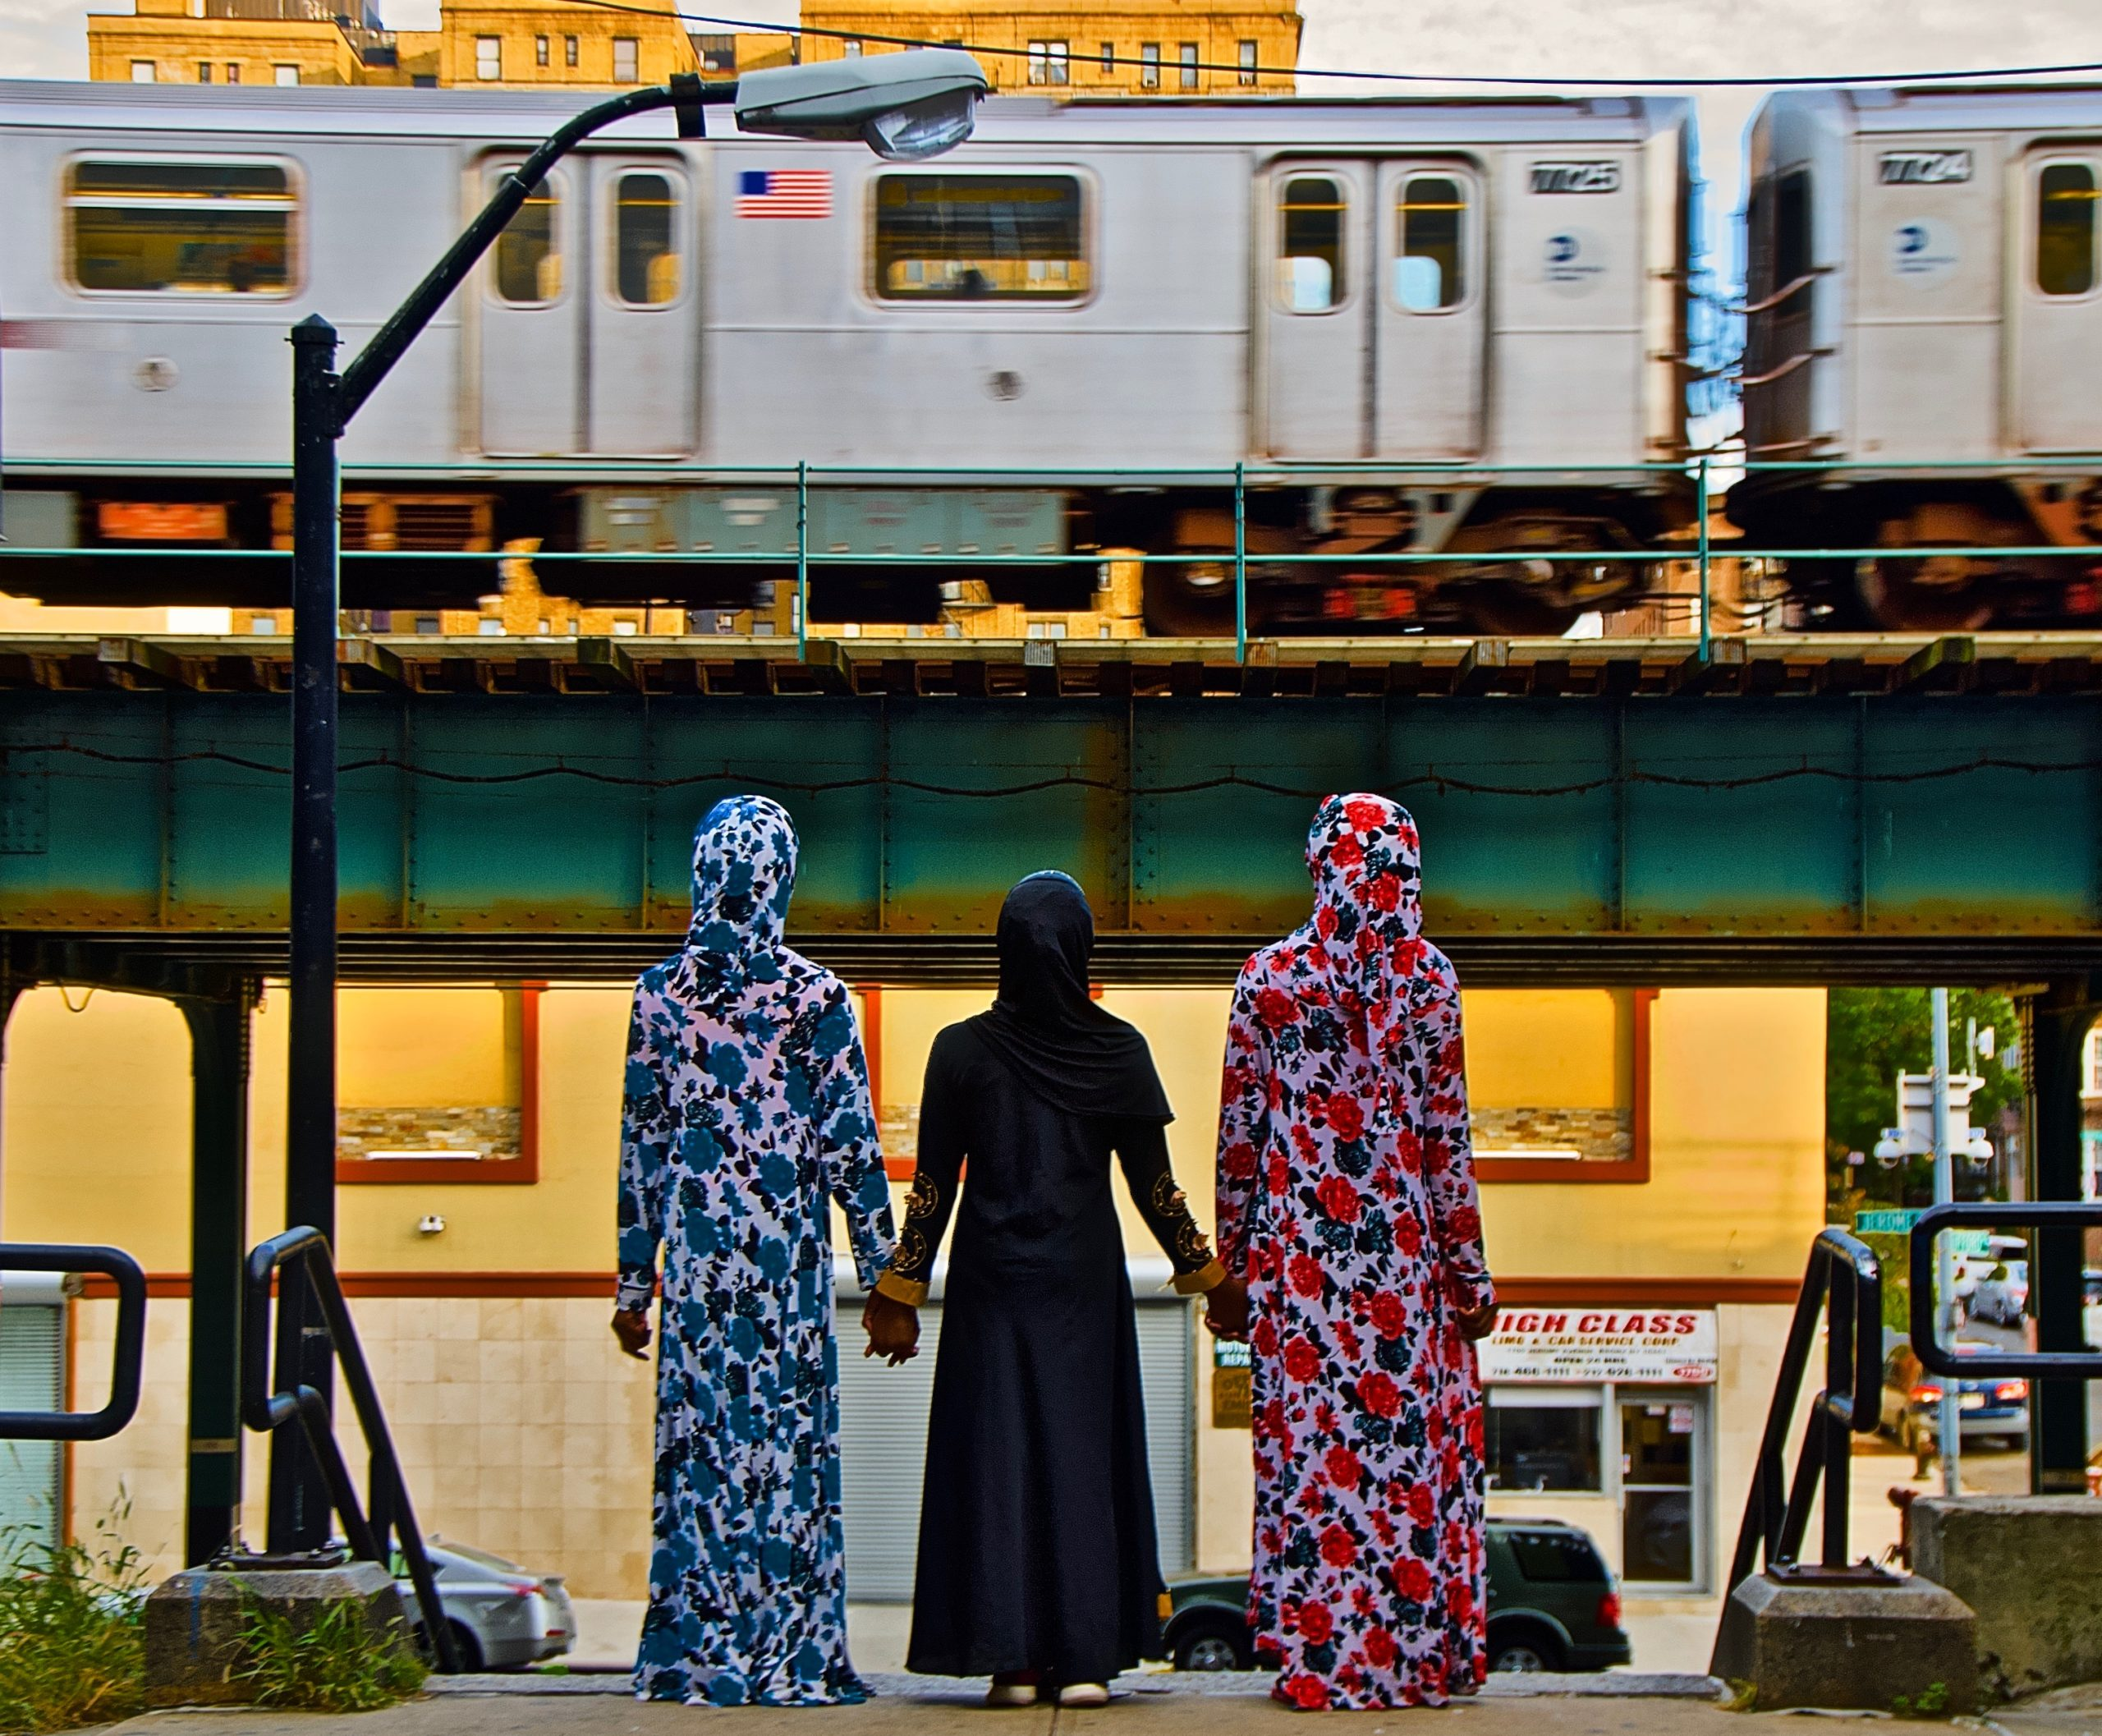 3 Muslim Girls, (W. 174 St. and Jerome Avenue steps, New York, NY), Jerome Avenue Subway Bronx, NYC. Sunday, October 13, 2019. 4:55 PM (67 degrees). NYC. © Ruben Natal-San Miguel. Courtesy of Ruben Natal-San Miguel & Postmasters Gallery.